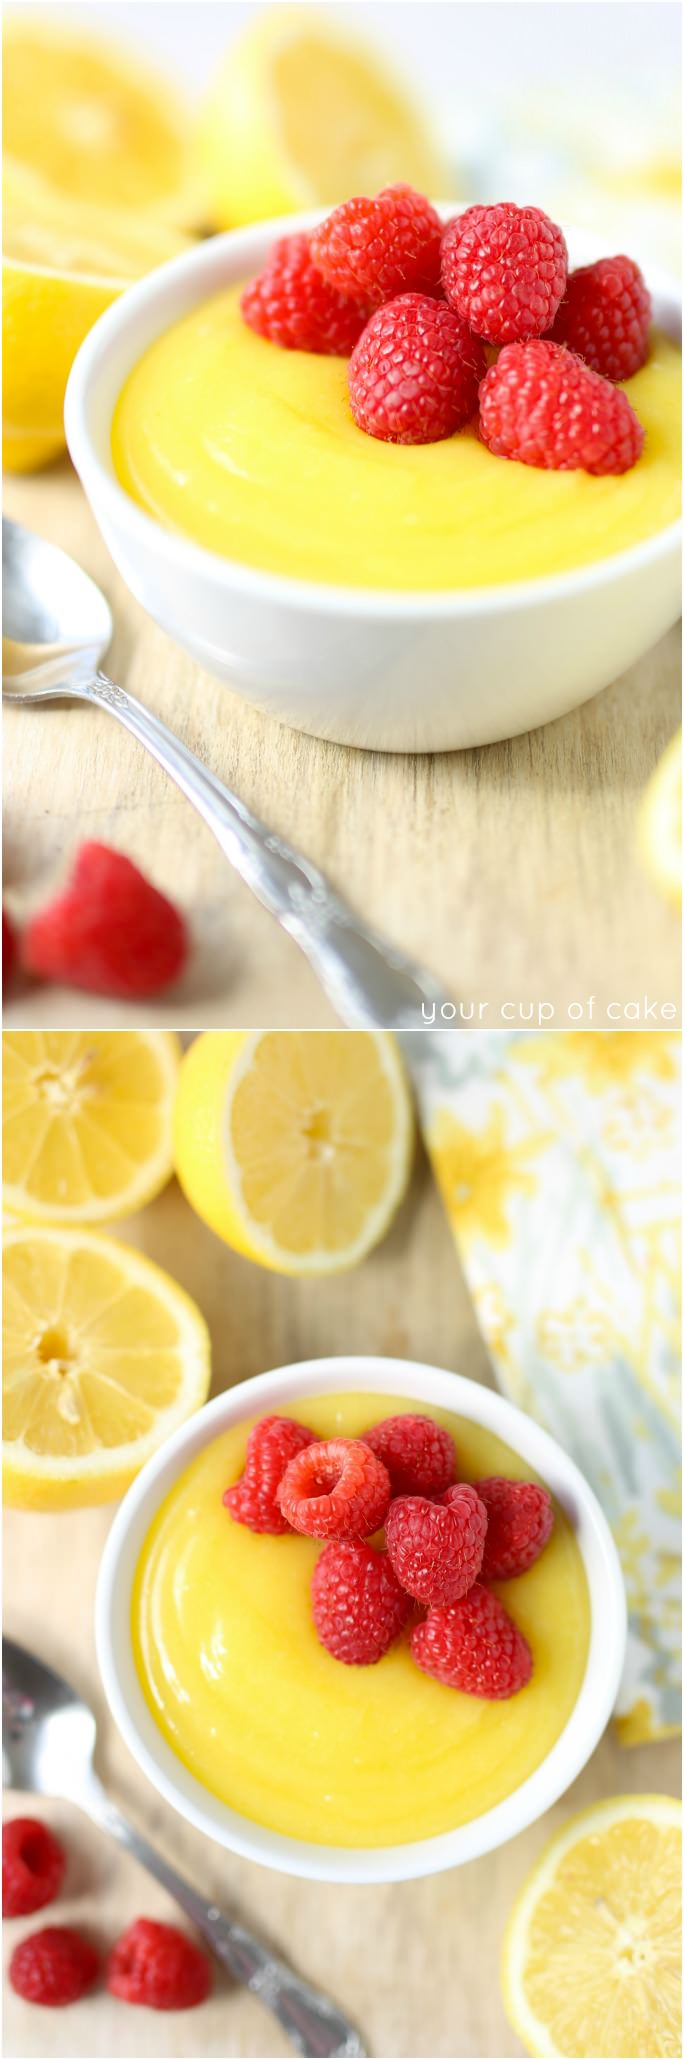 The most delicious Lemon Curd I have ever eaten! And so easy to make!